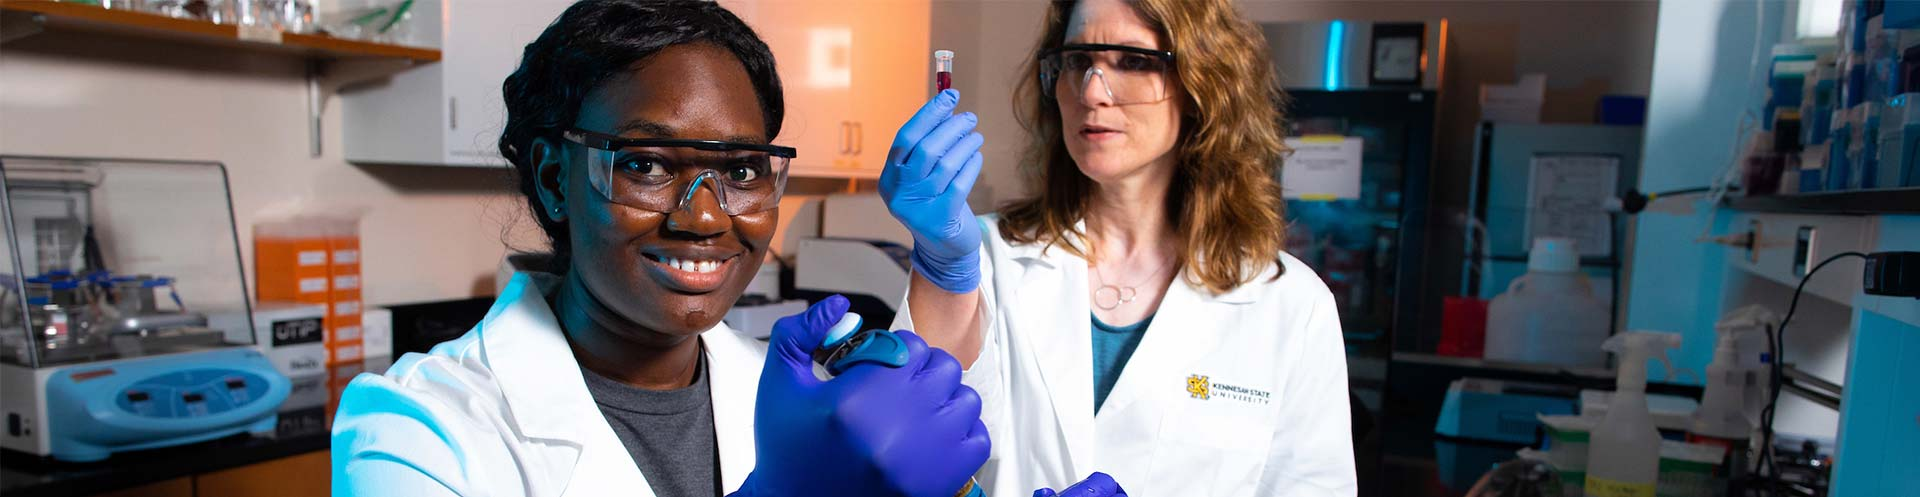 Summer research experience inspires Kennesaw State biochemistry major